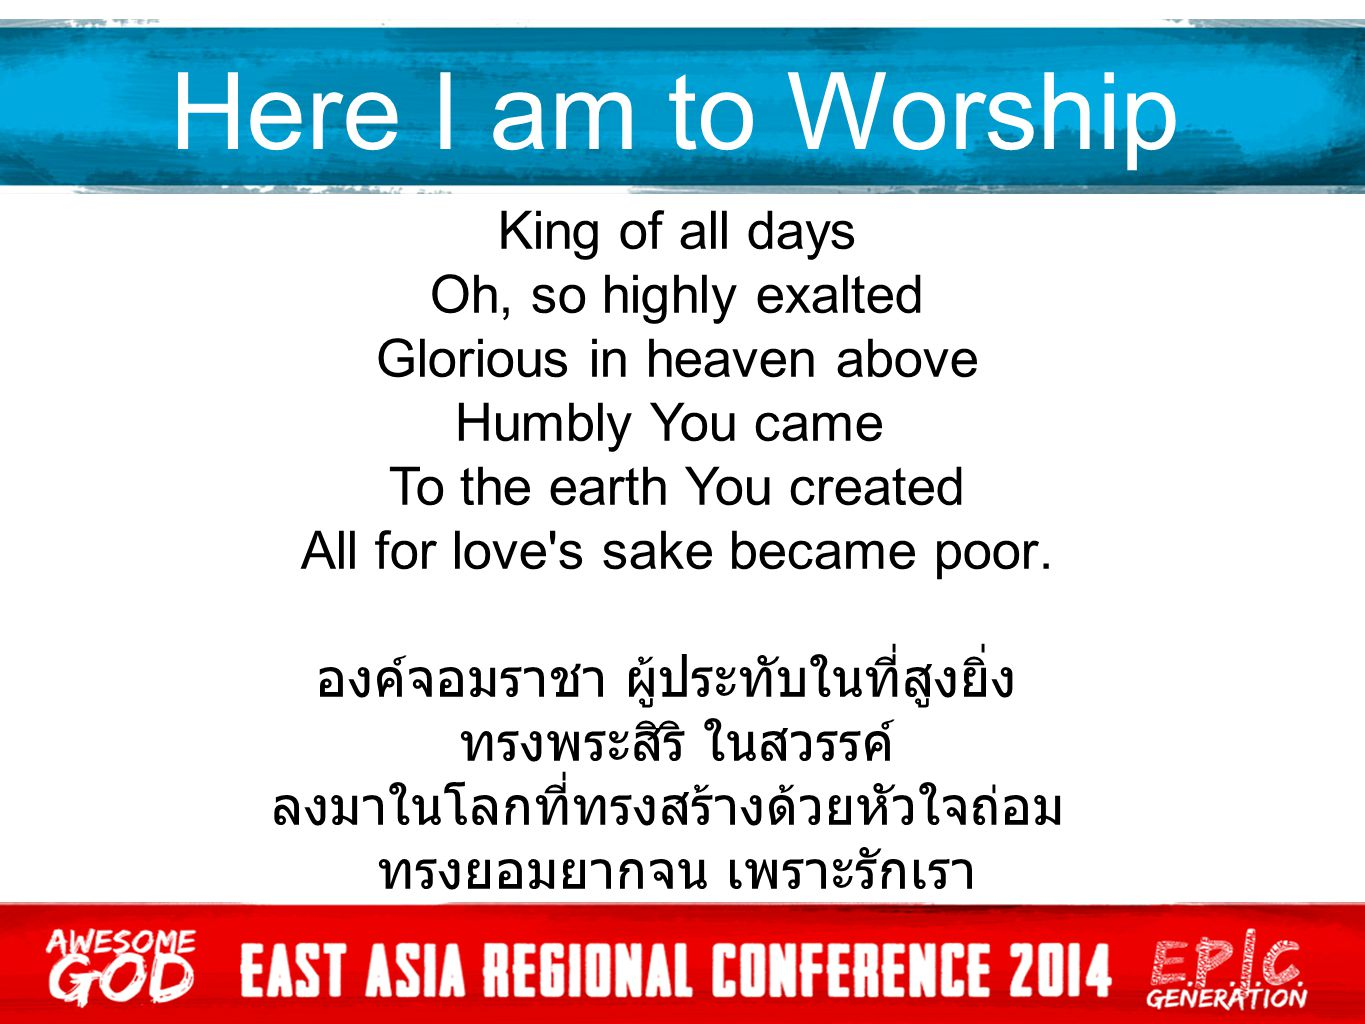 Here I am to Worship King of all days Oh, so highly exalted